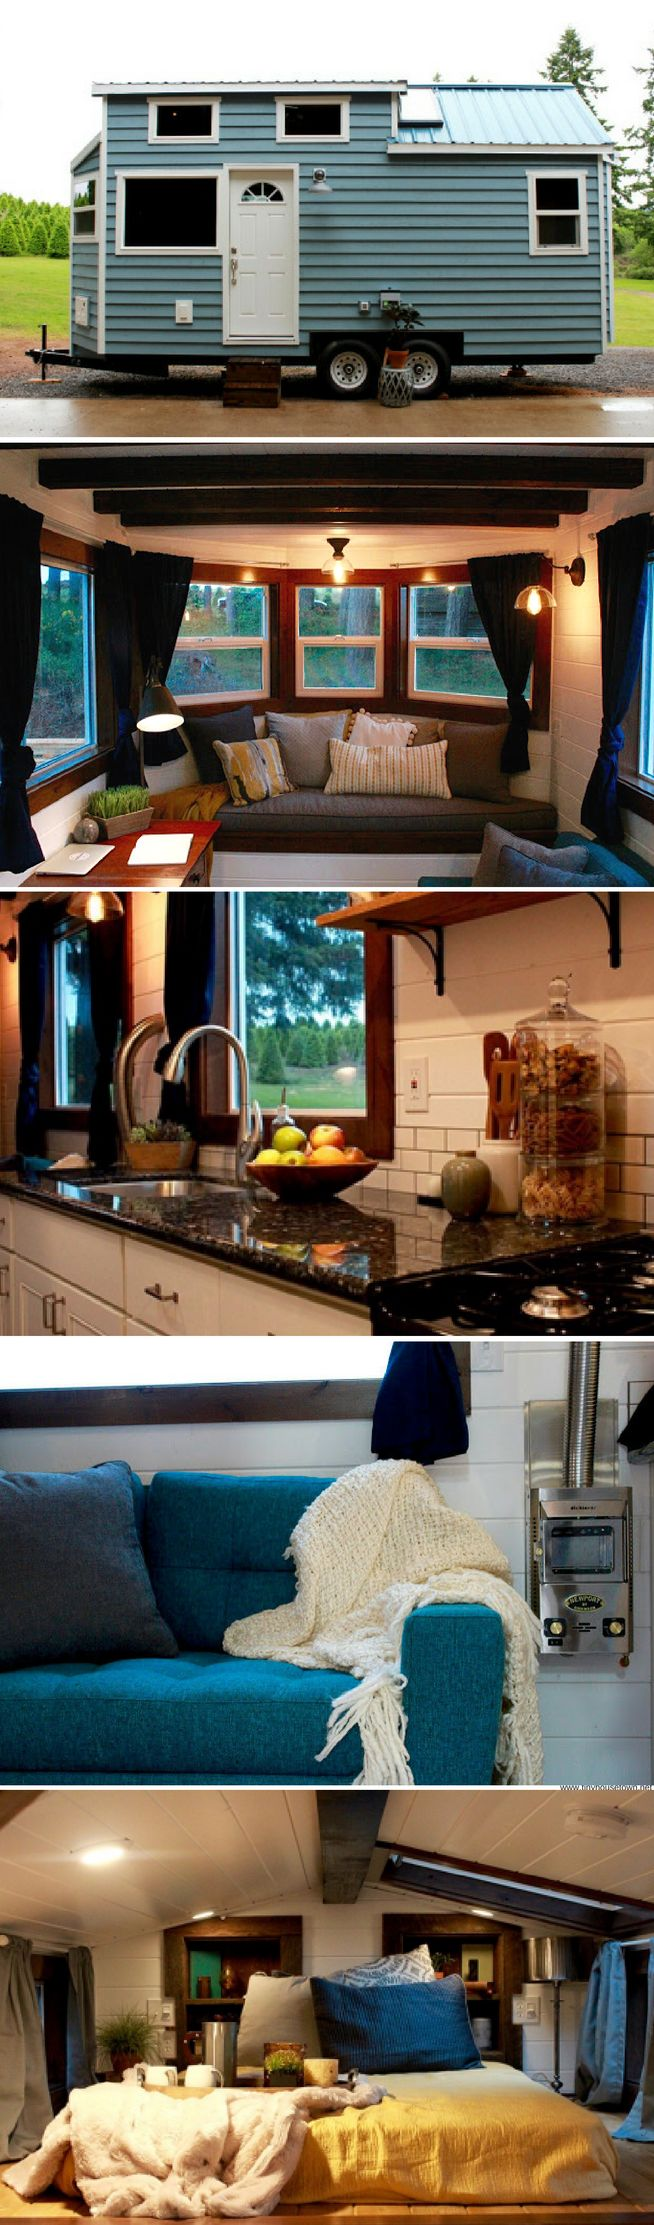 Enjoyable 17 Best Ideas About Tiny House Interiors On Pinterest Tiny House Largest Home Design Picture Inspirations Pitcheantrous